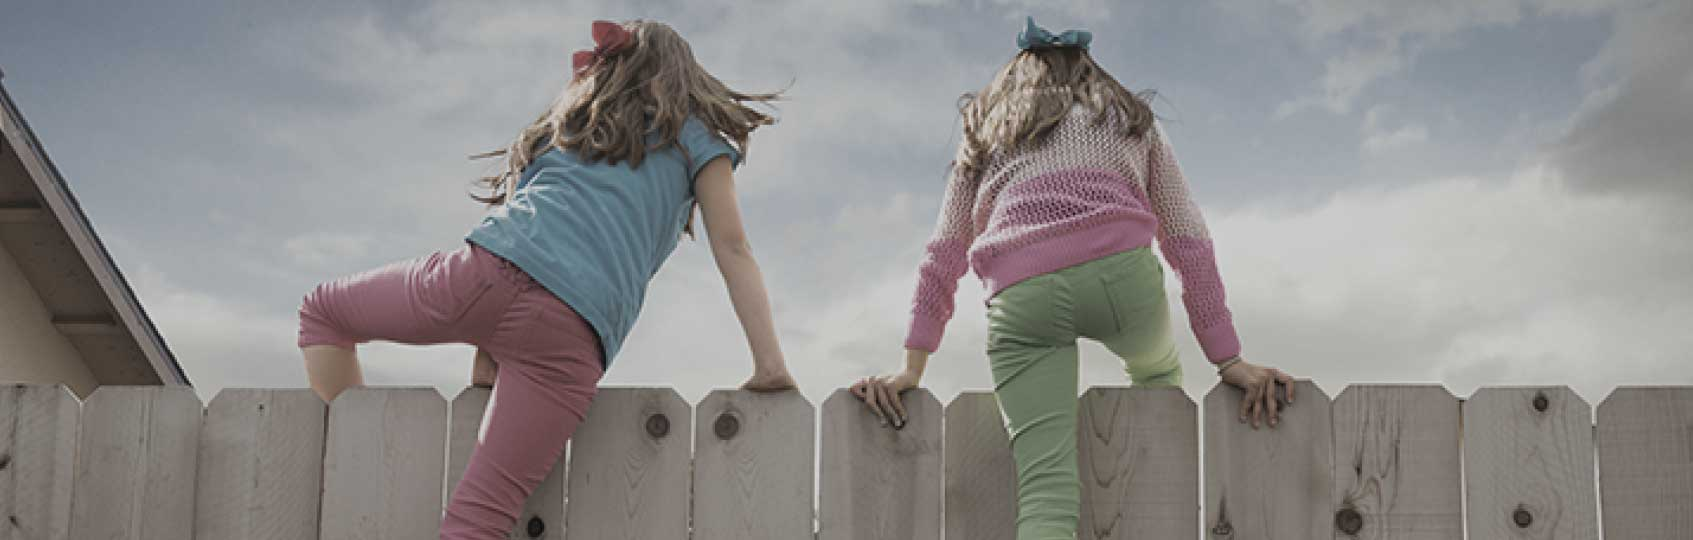 Girls climbing over a fence